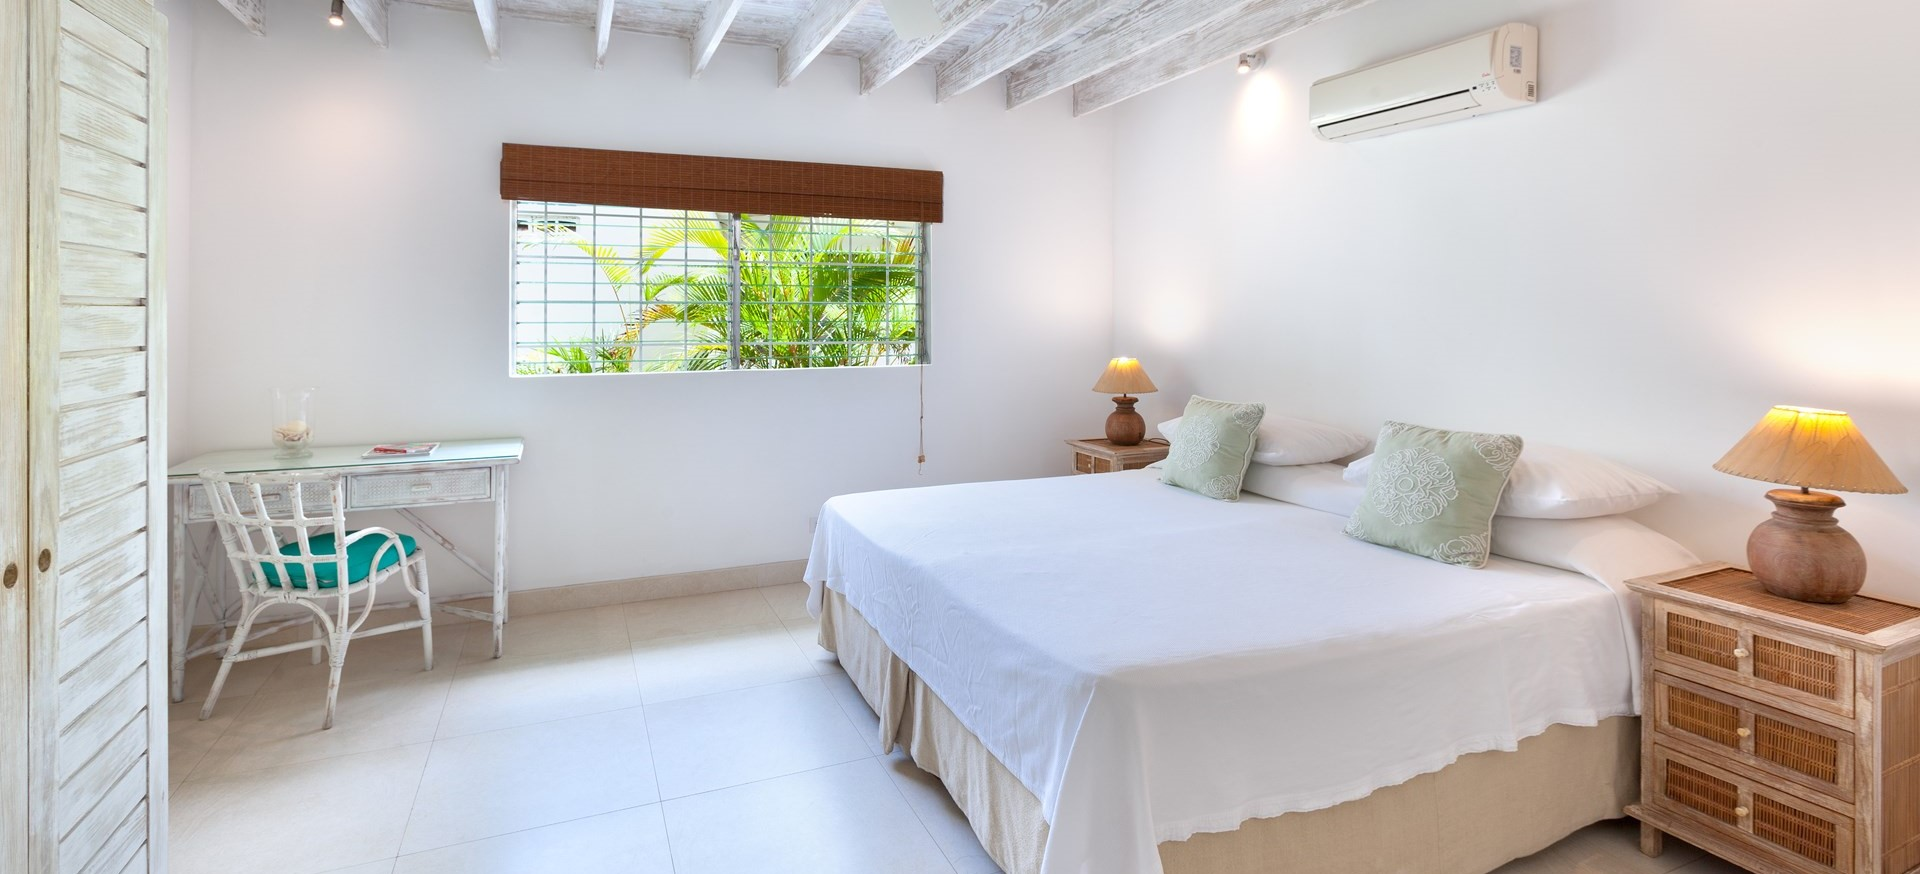 easy-reach-villa-barbados-bedroom-3